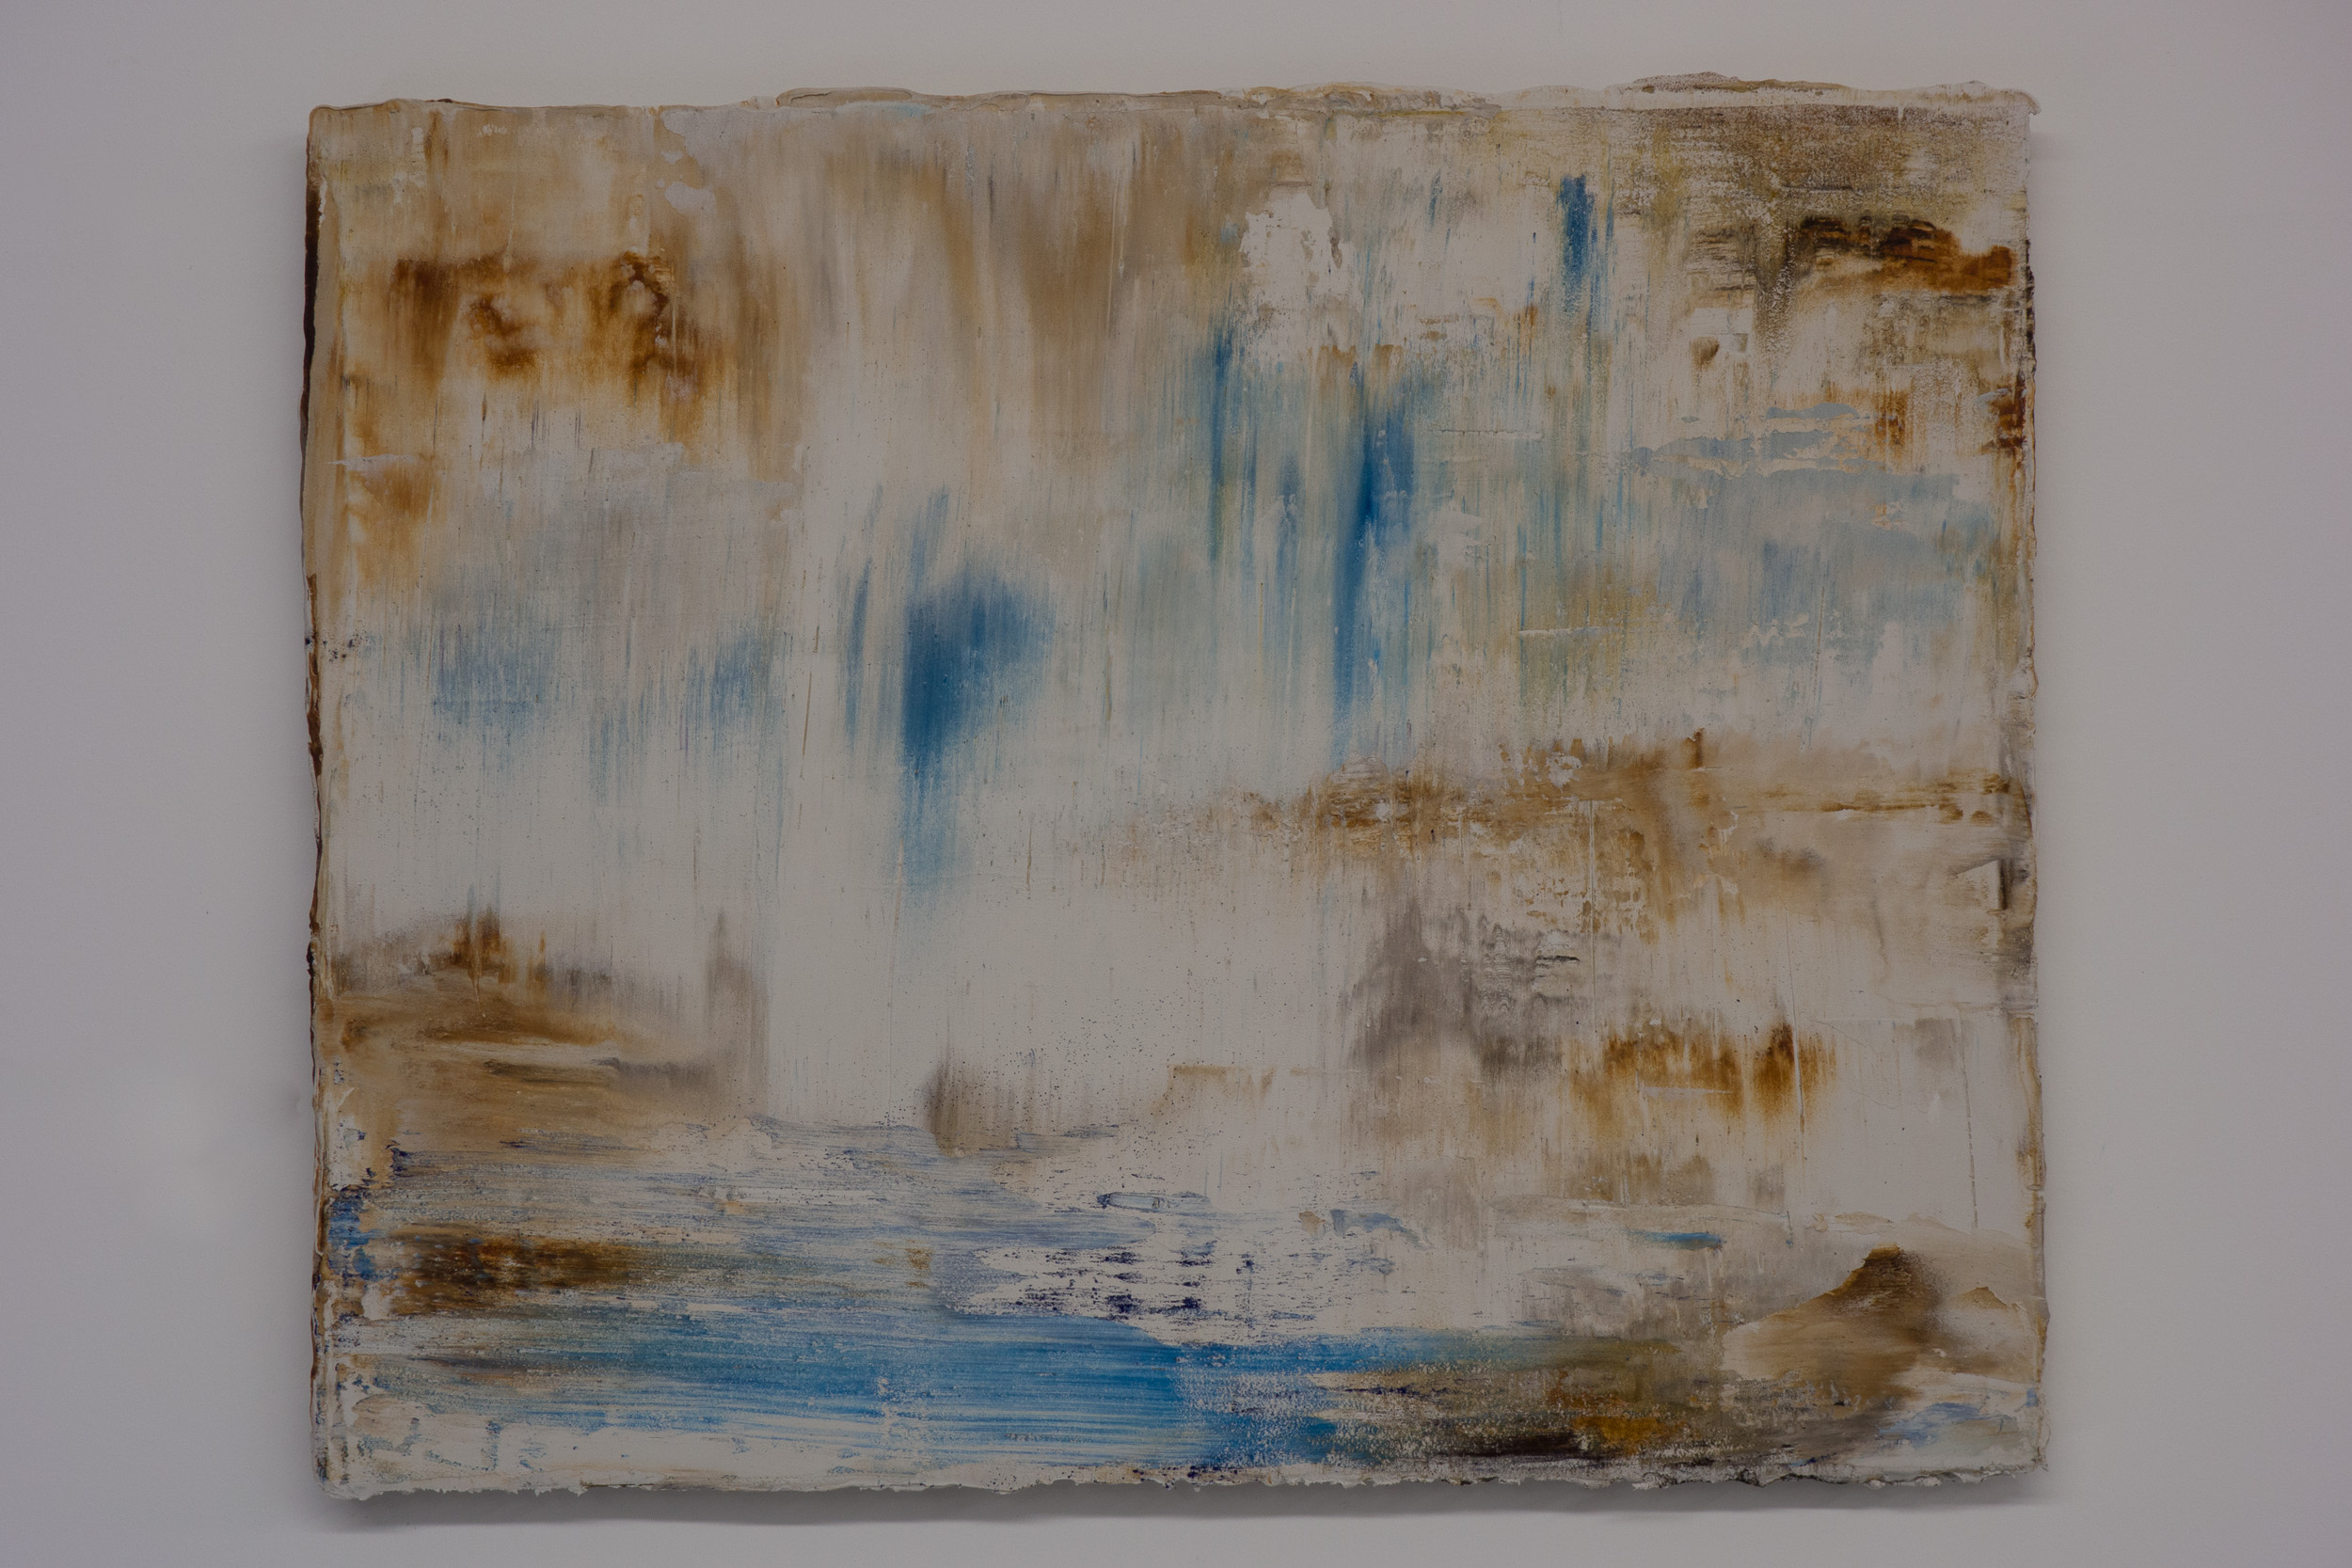 Shelley Vanderbyl - What I Can Feel Not What I Can See - 2016 - Fresco on Panel - 16x20.jpg